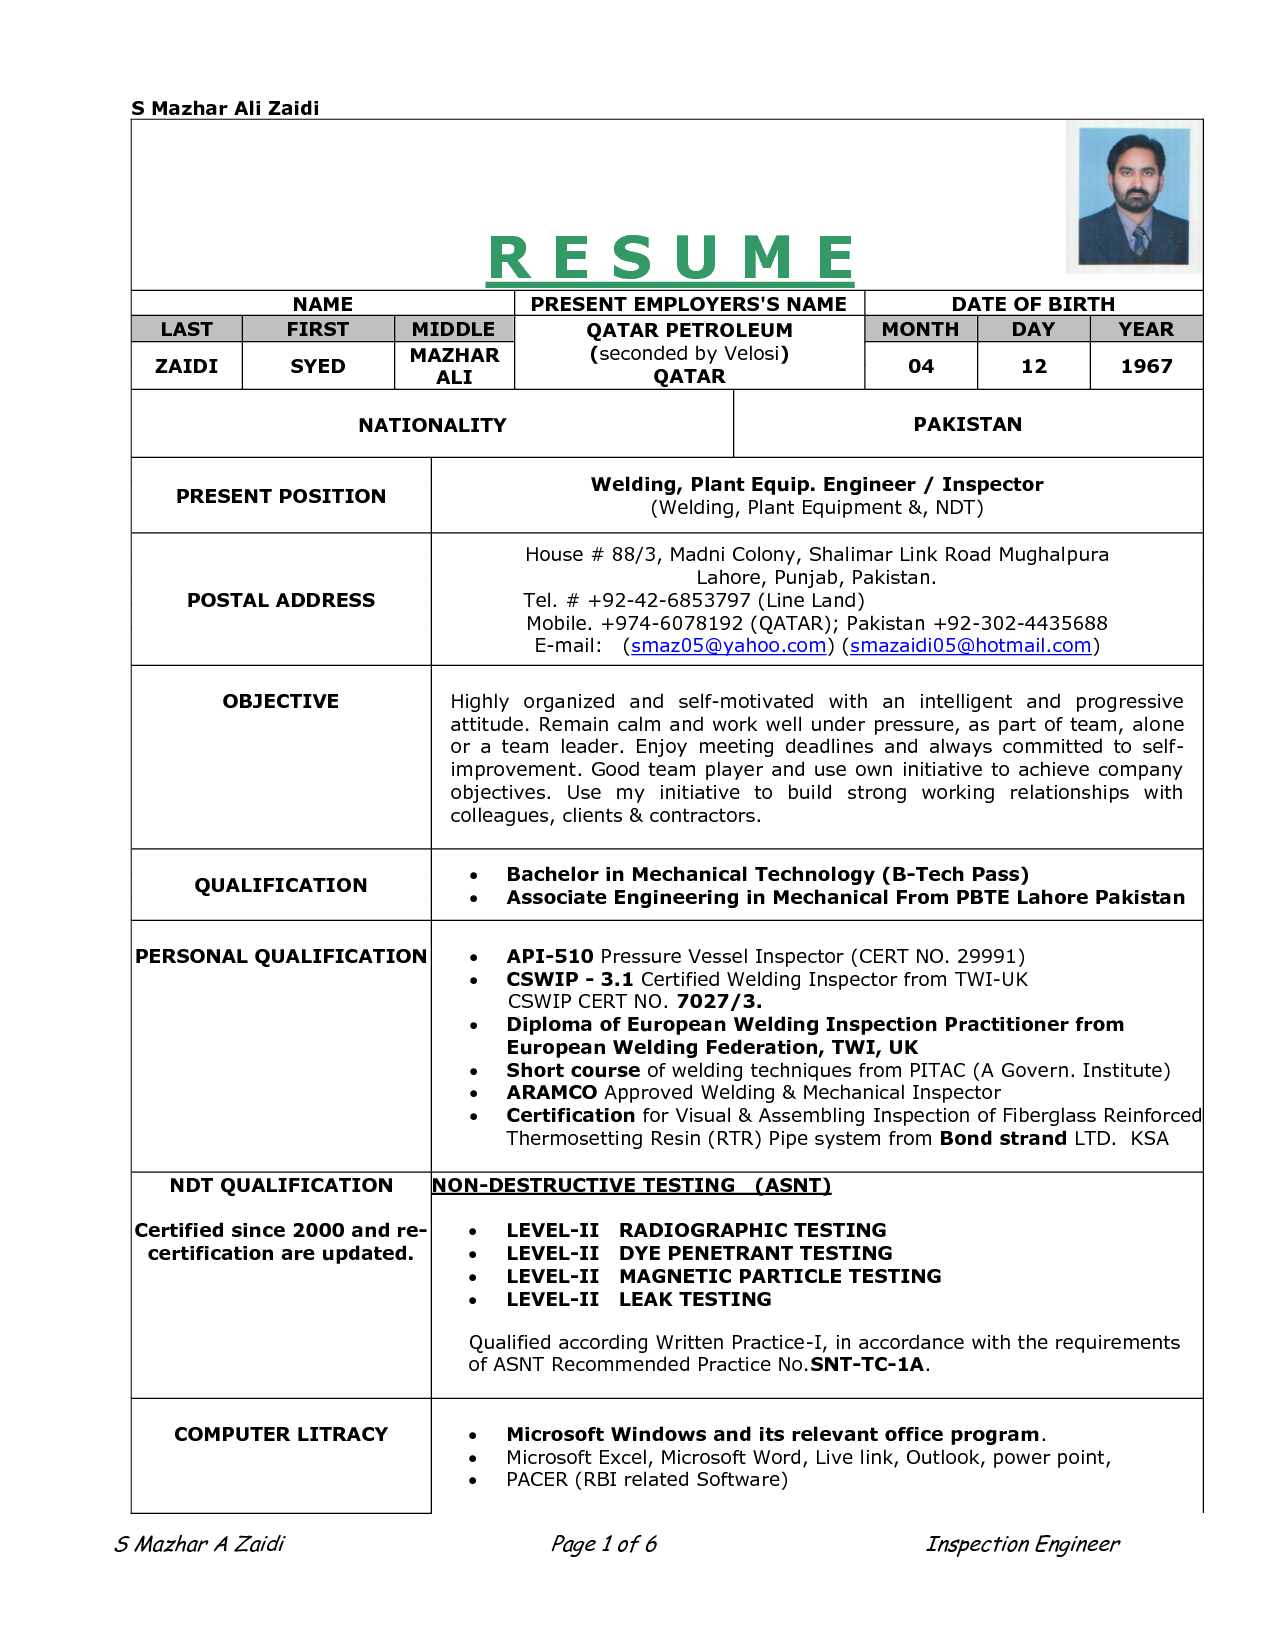 sample resume for welding position | Re Work Procedure Resume | Life ...